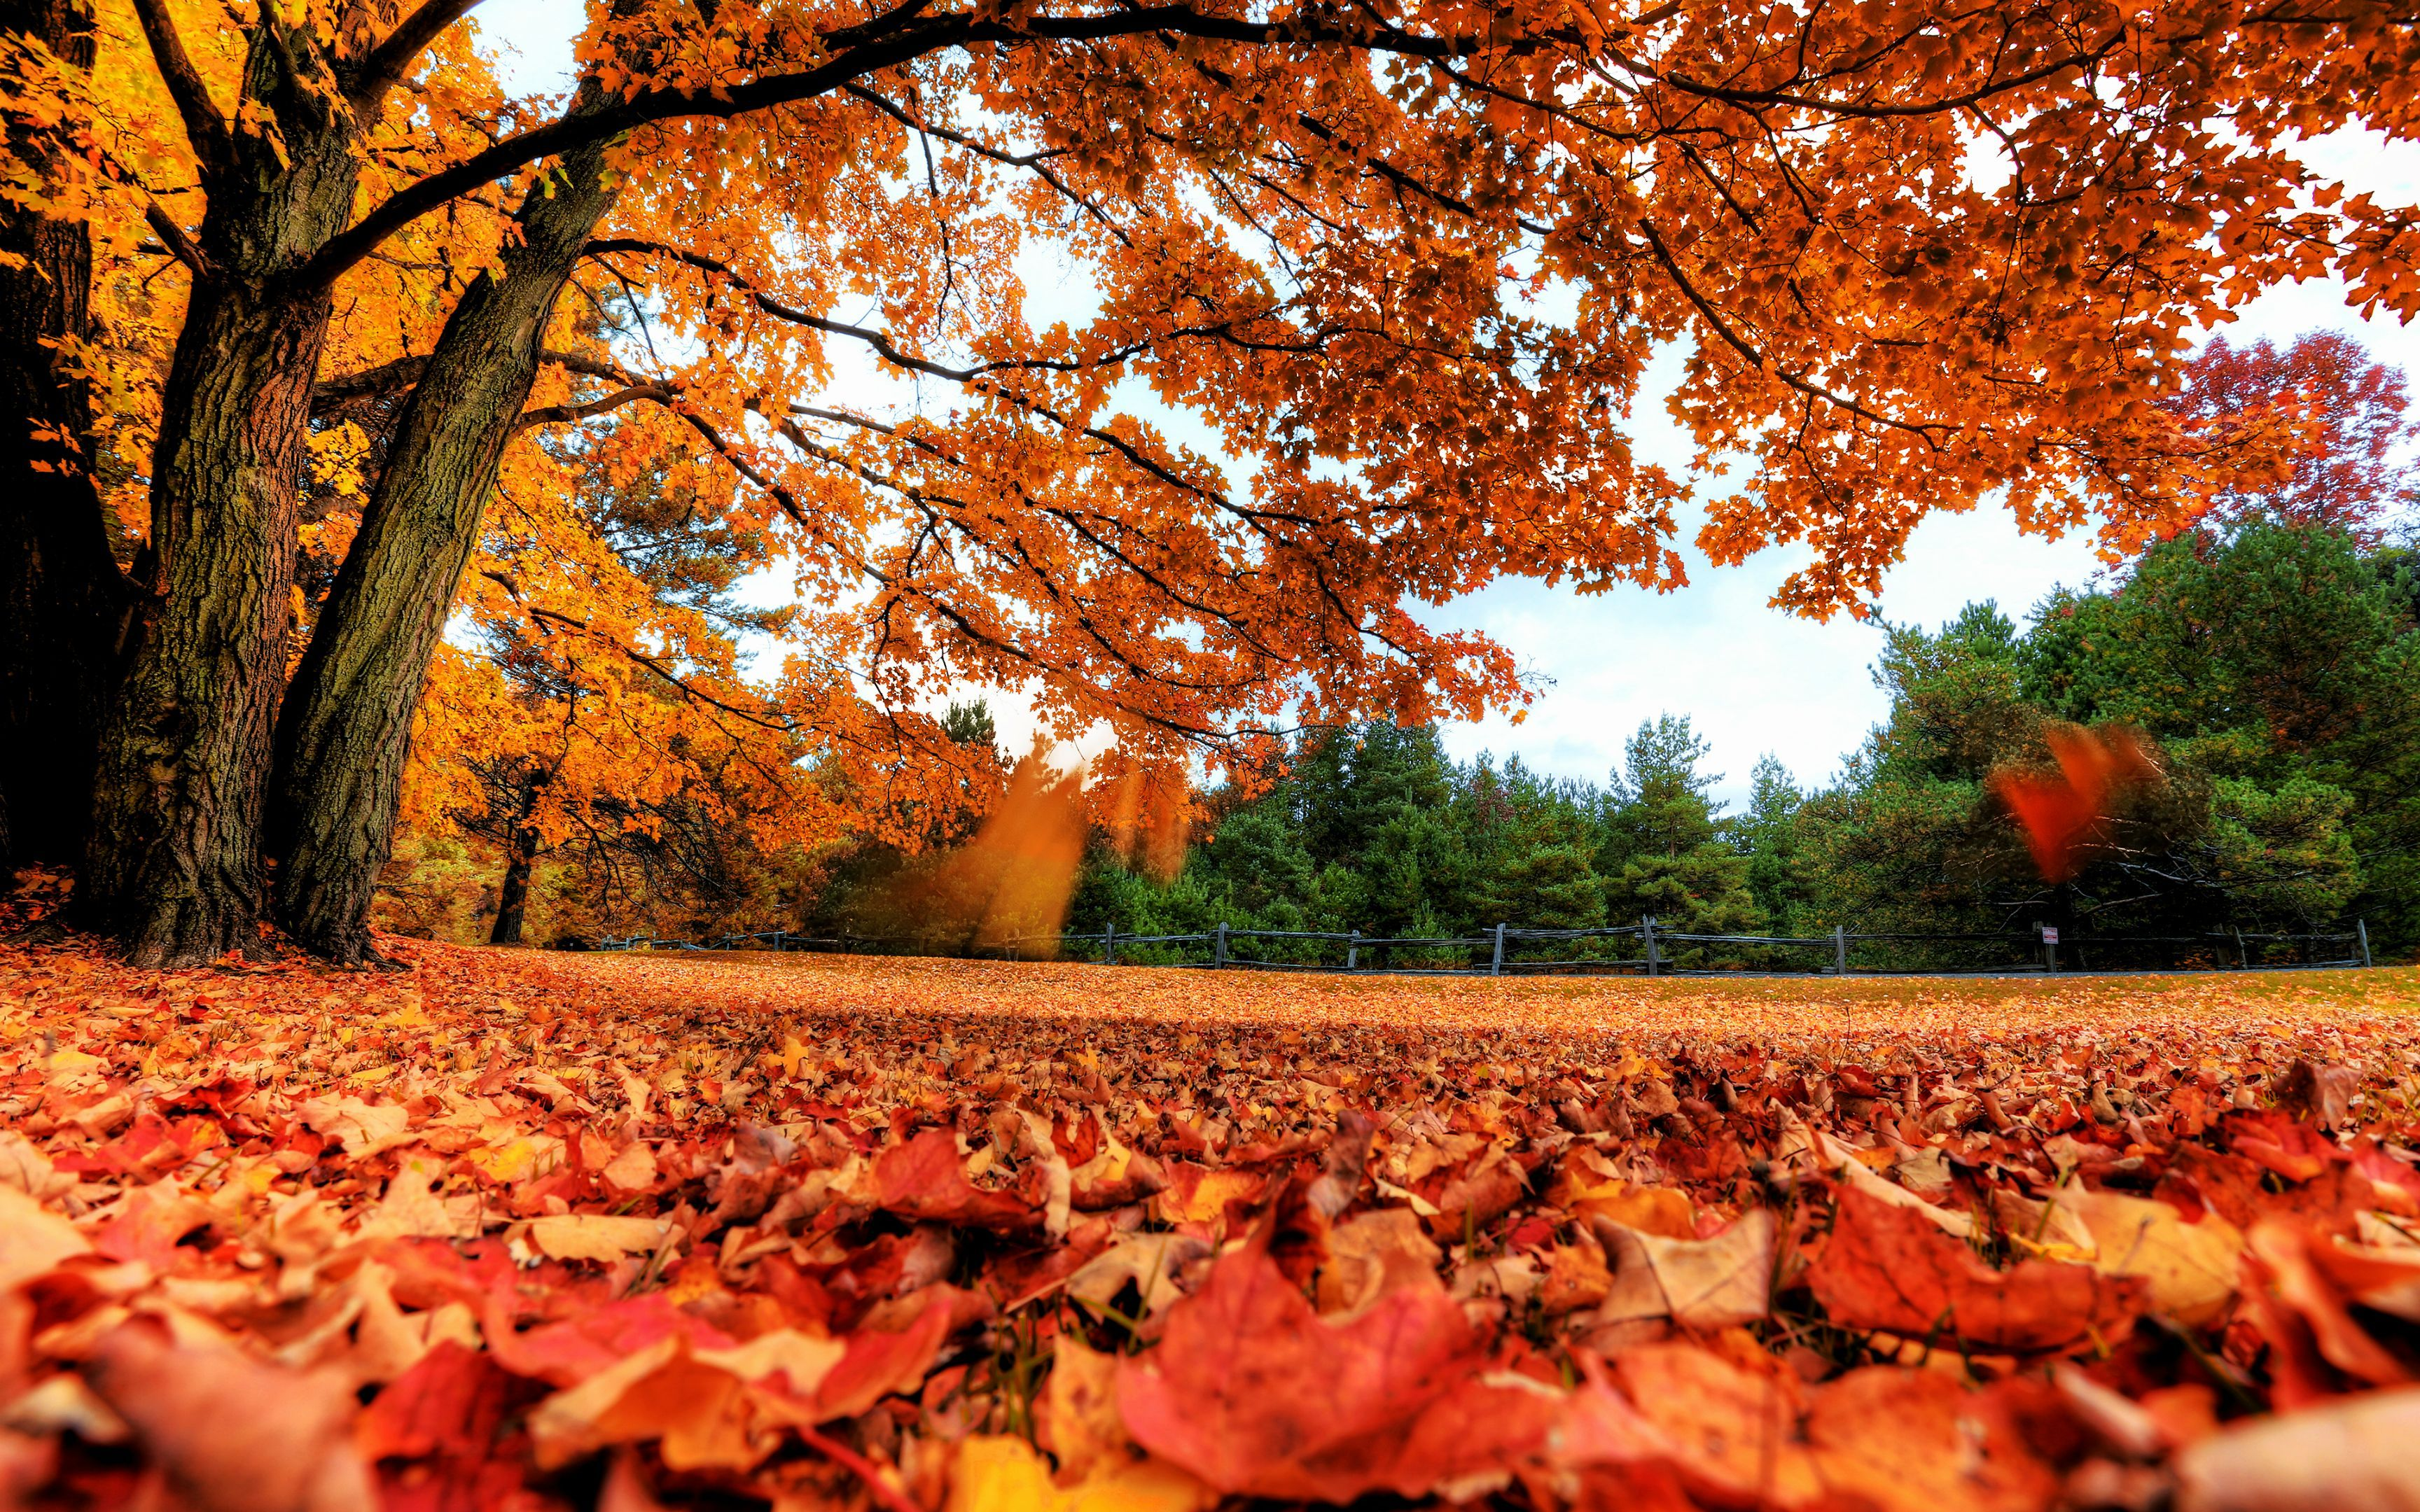 4k Computer In 2020 Autumn Leaves Wallpaper Fall Wallpaper Autumn Scenery